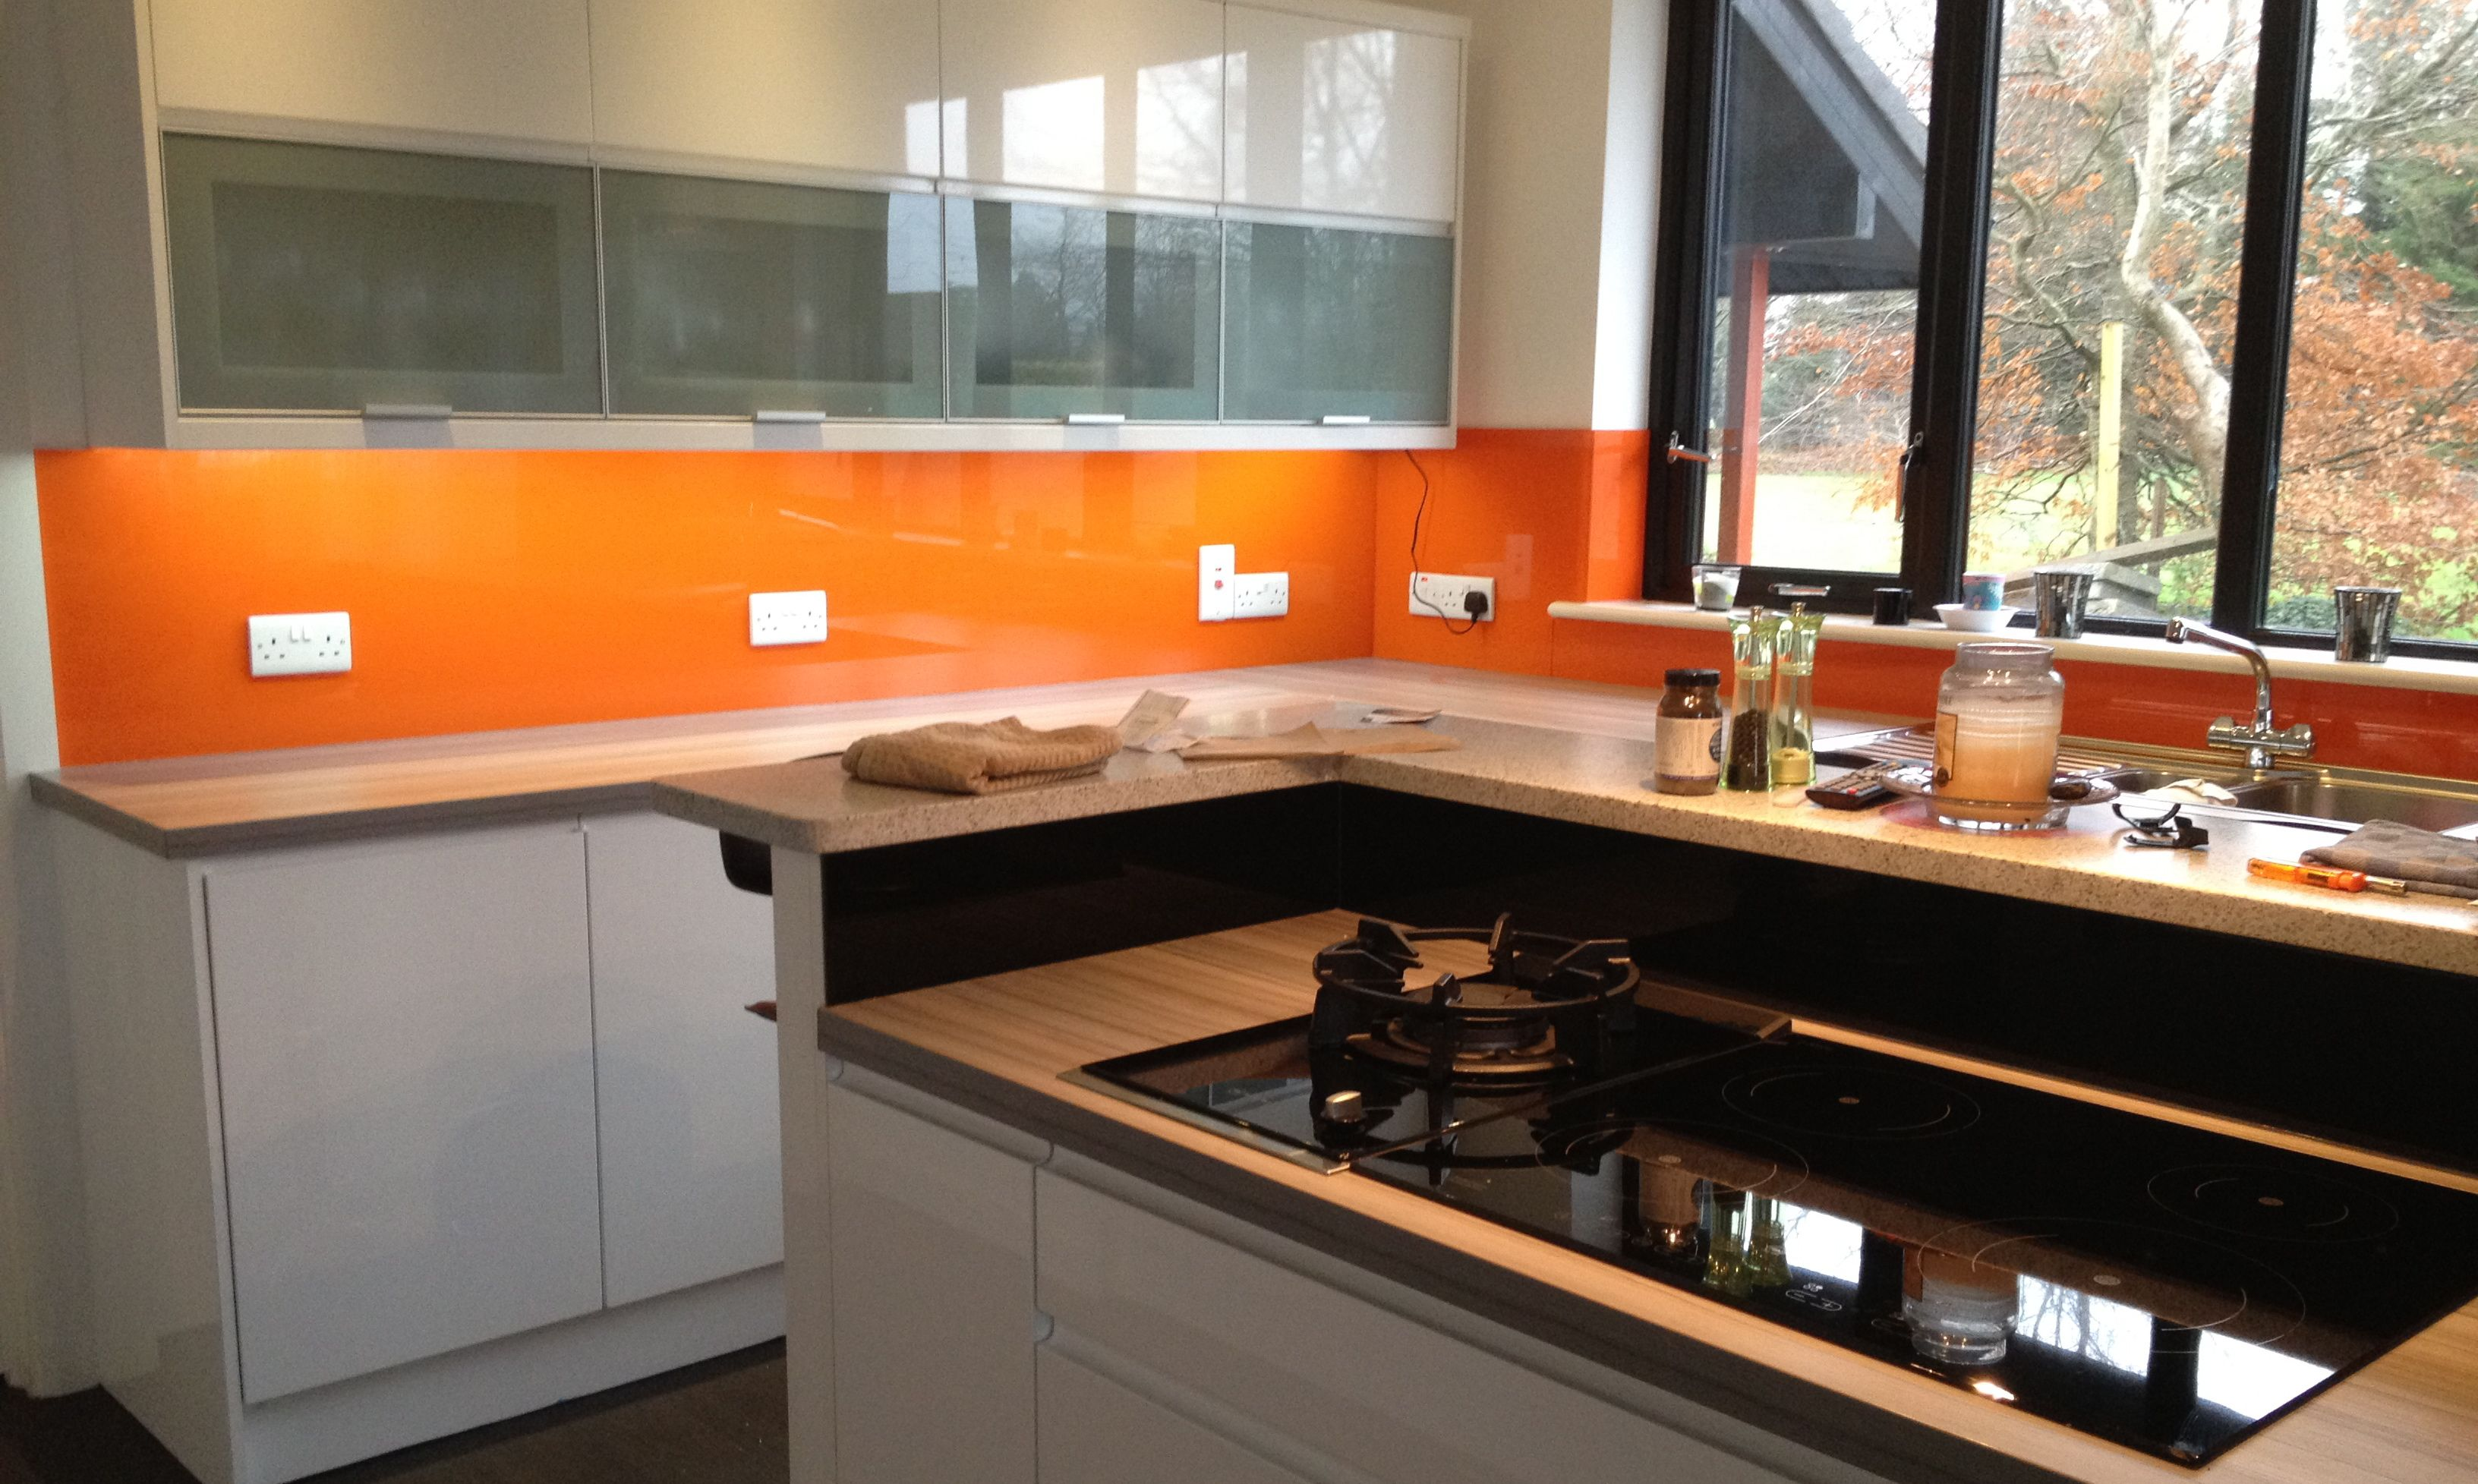 Pure Orange Glass Kitchen Splashback Comes With Cutouts For Sockets